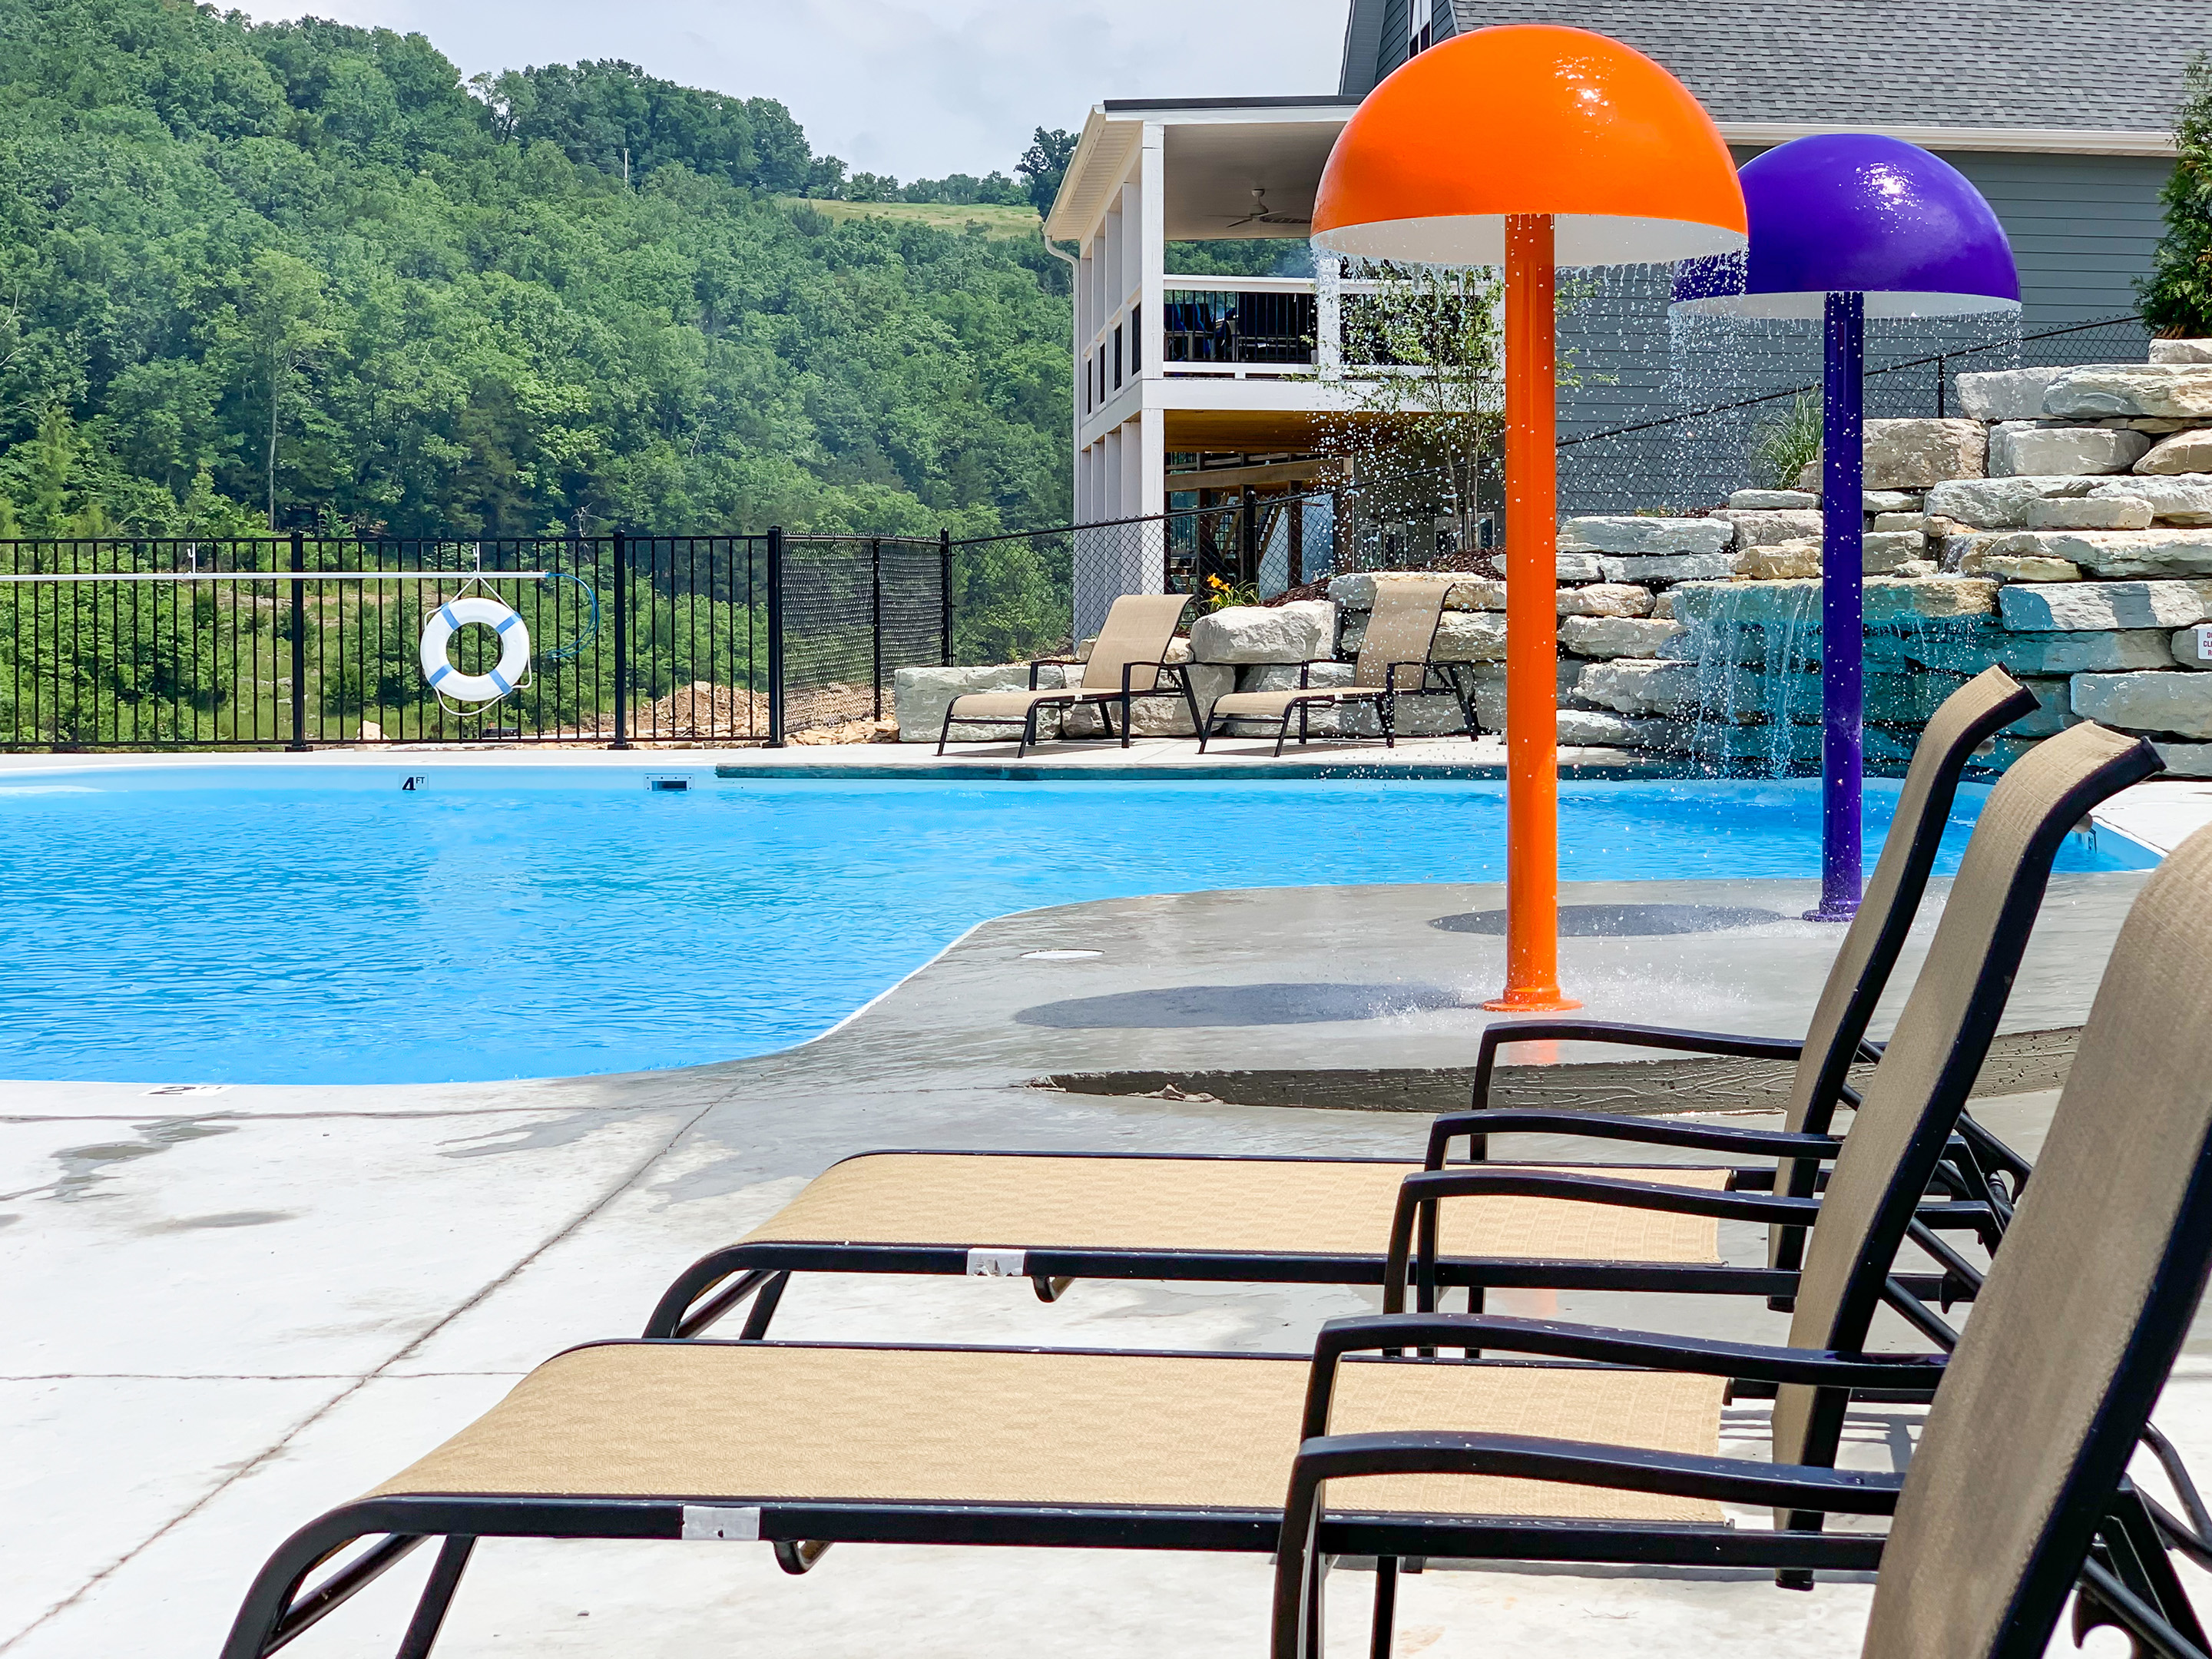 Chateau Cove Outdoor Swimming Pool, Table Rock Lake, Branson, Missouri